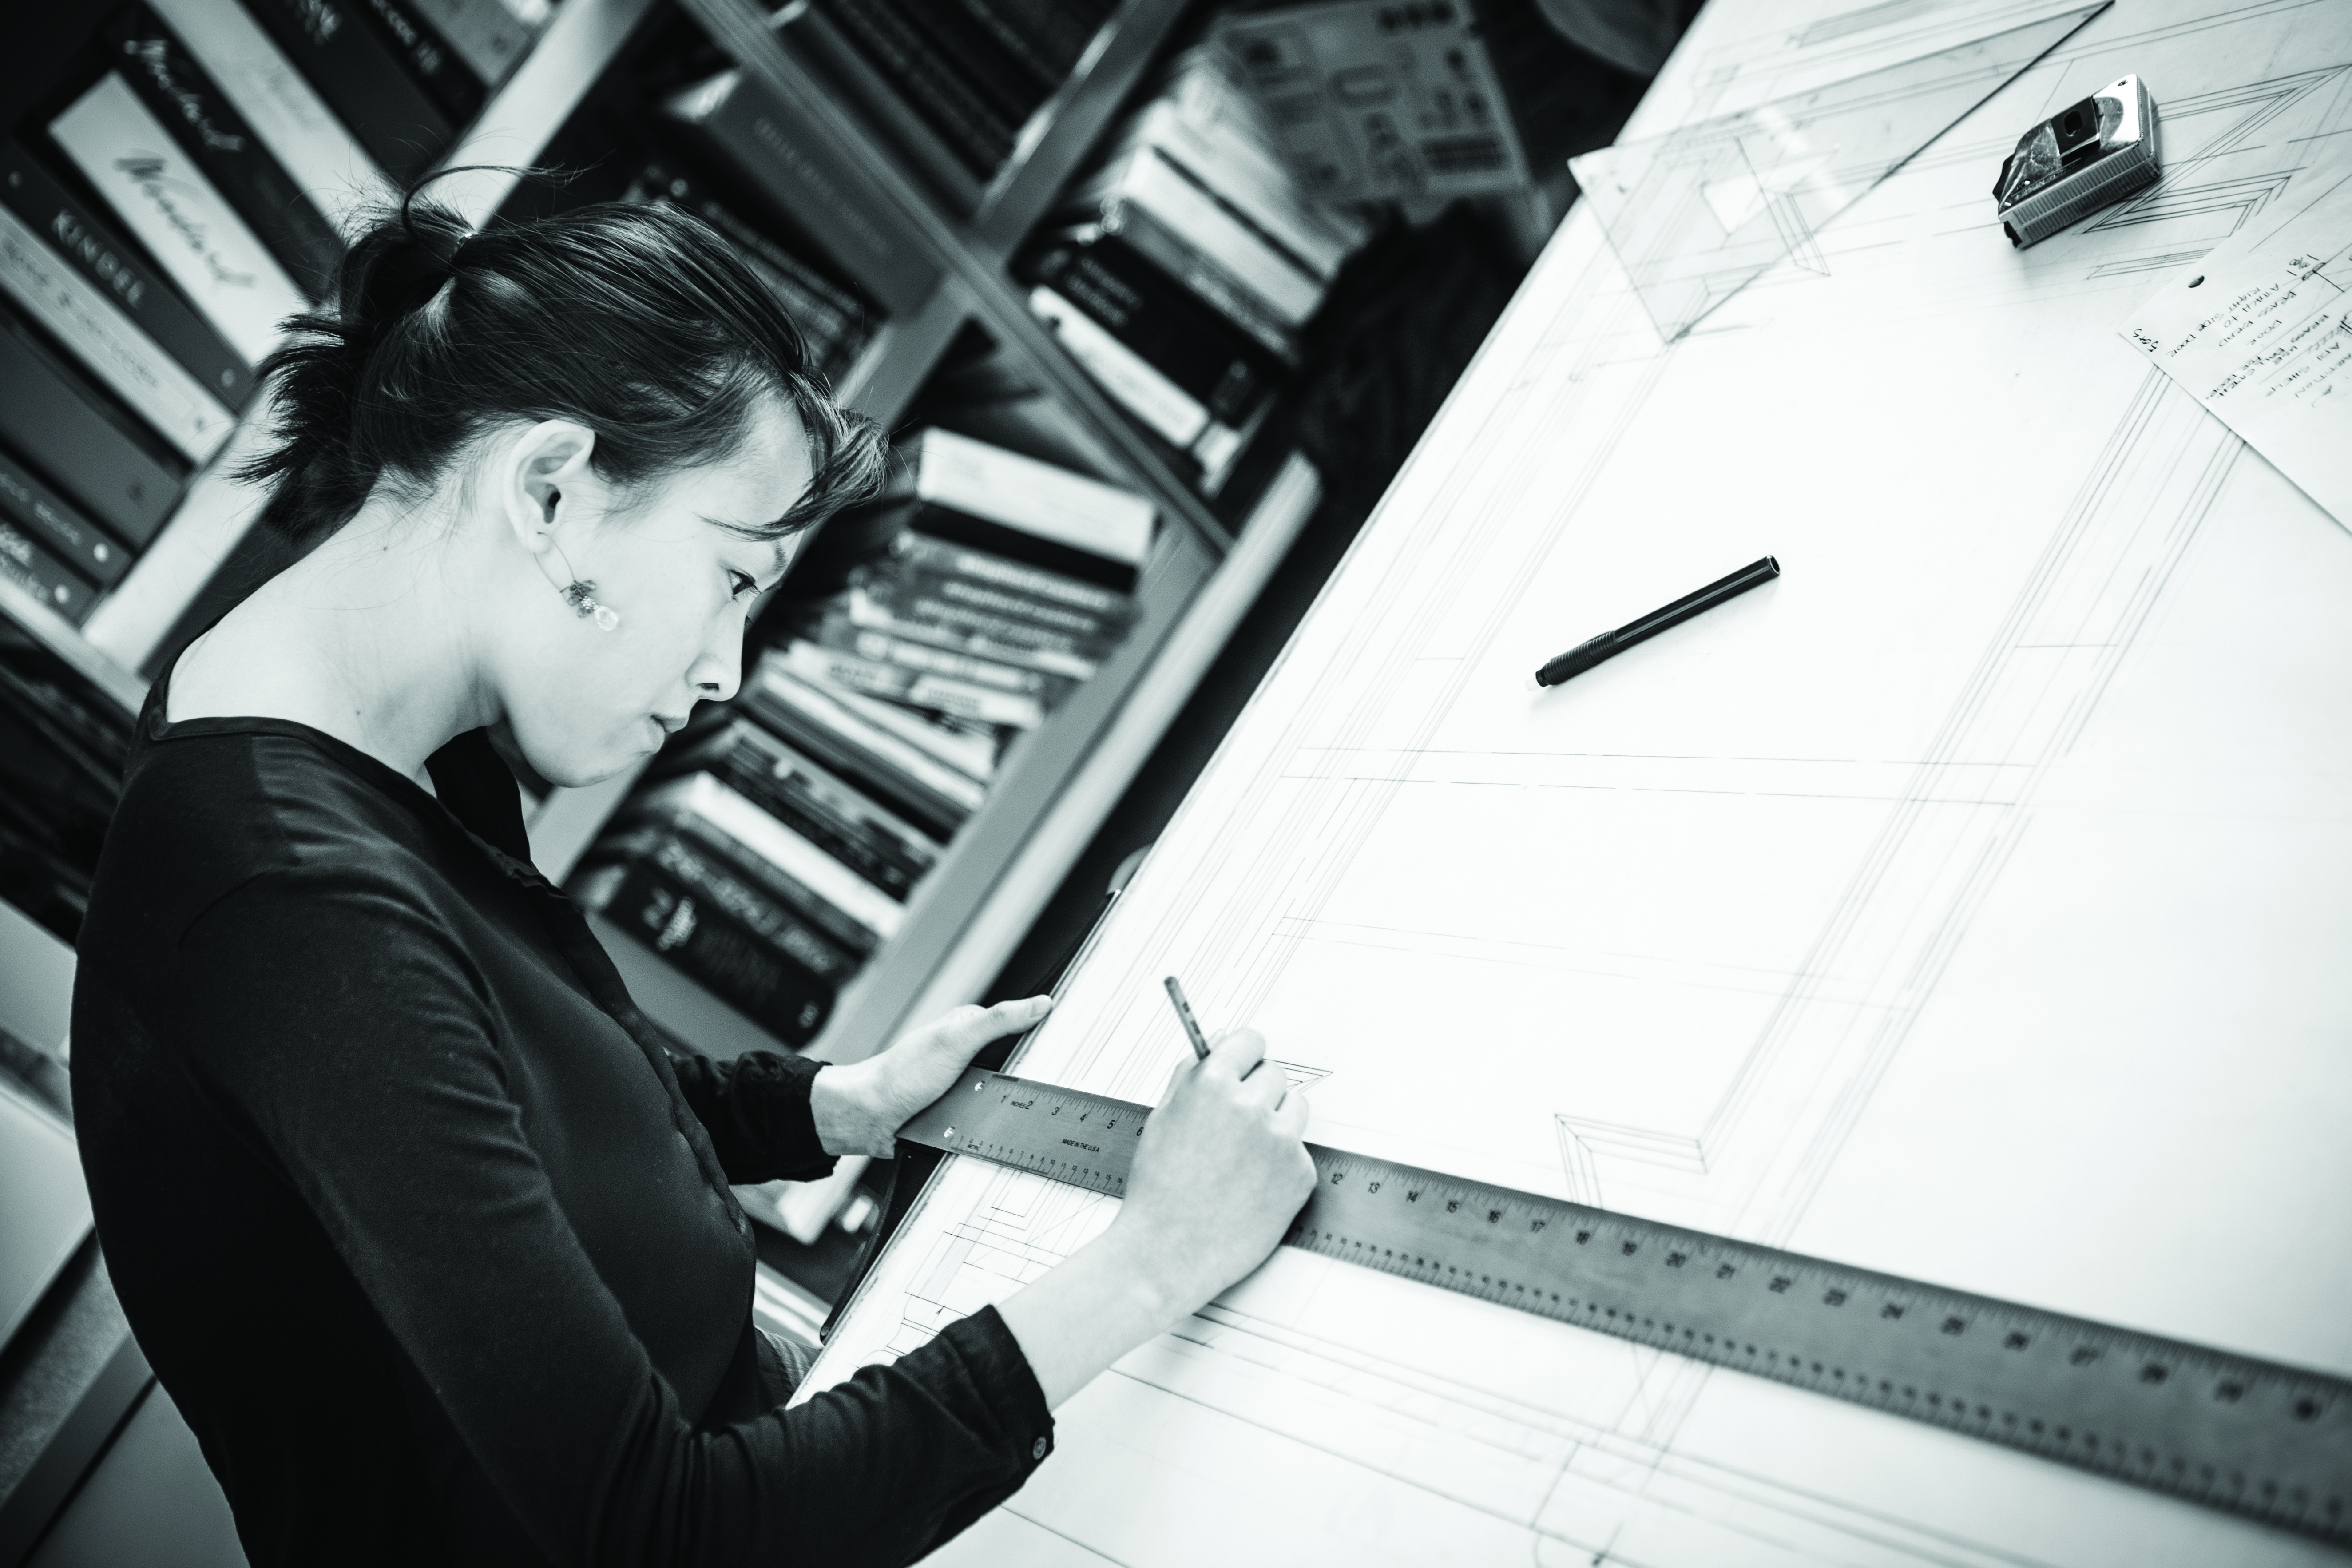 Woman staring concentratedly at a drafting table as she uses a ruler to draw a straight line on a design